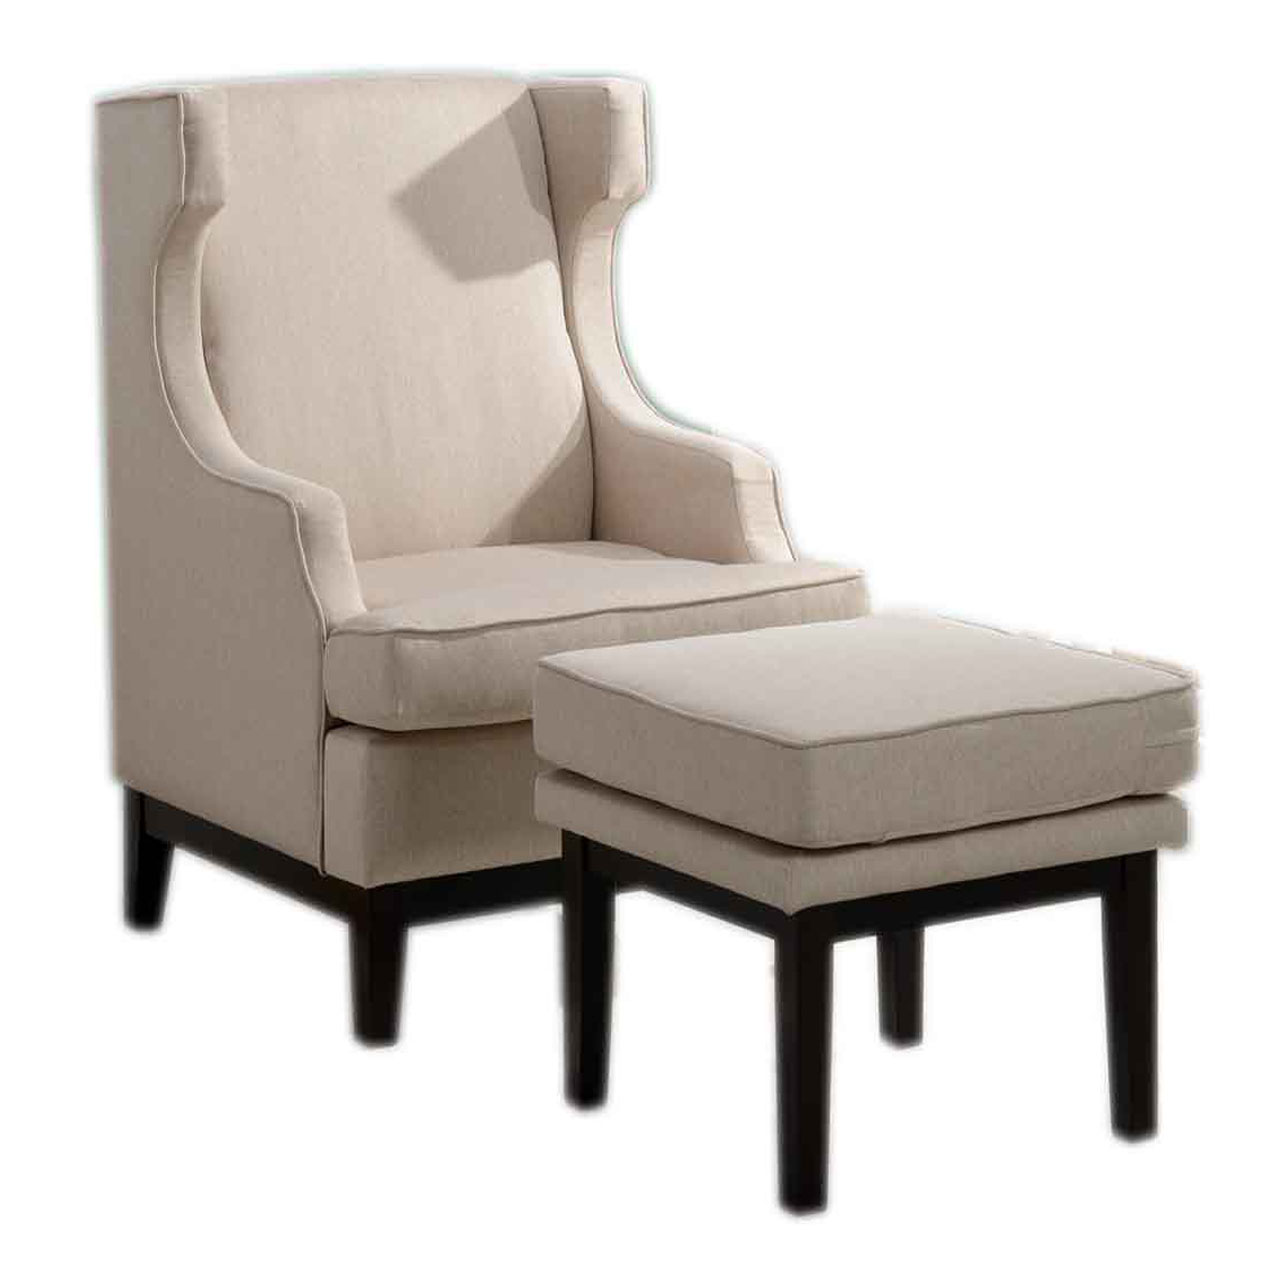 Furniture stores in manila philippines - Orleans Tub Chair With Ottoman Furniture Store Manila Philippines Urban Concepts